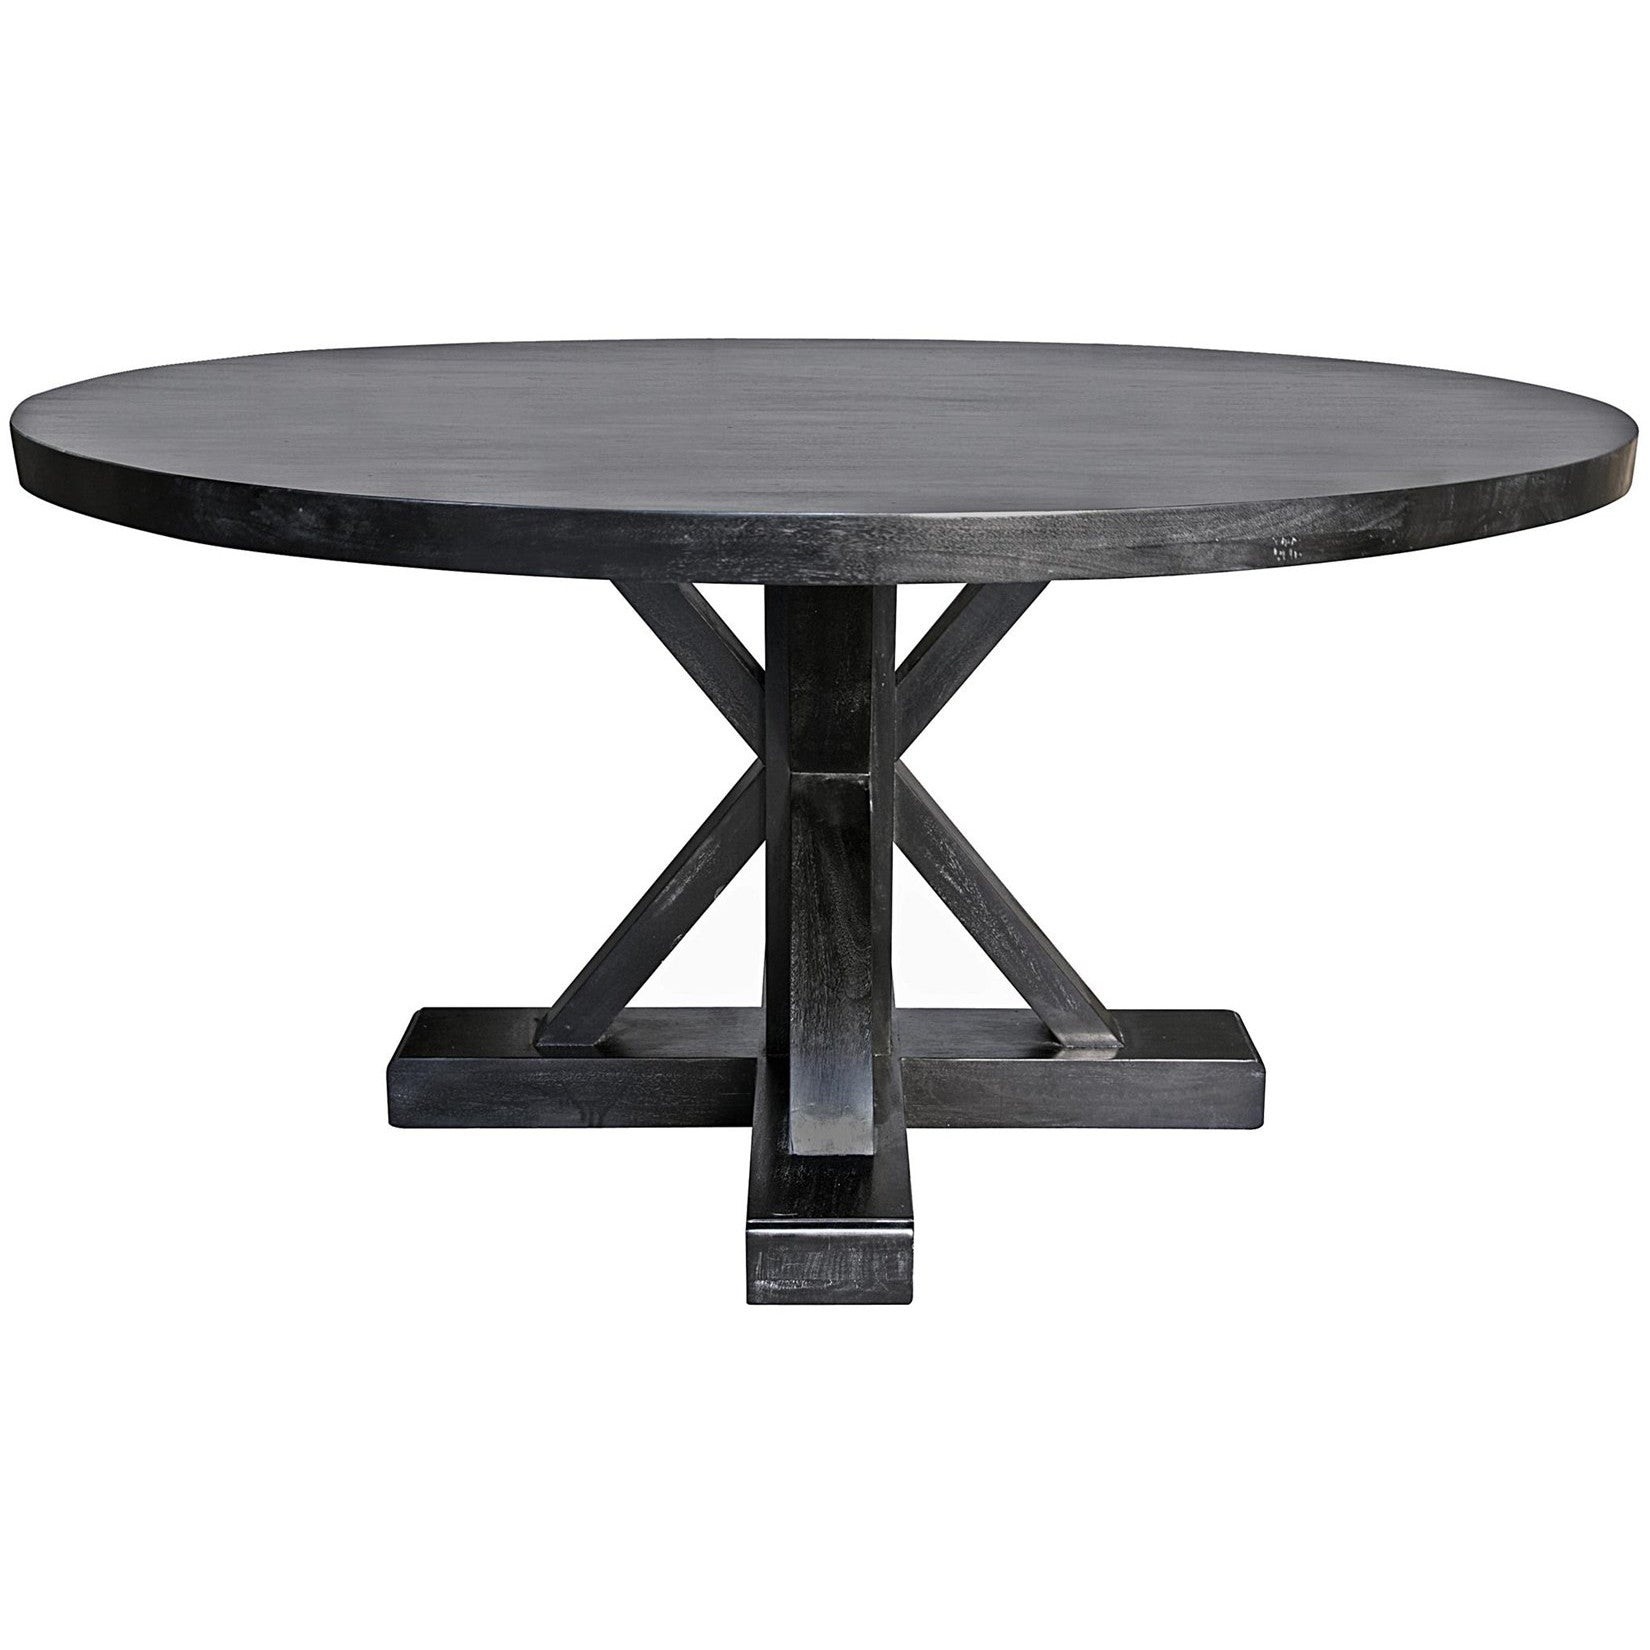 Noir - Criss-Cross Round Table, Black